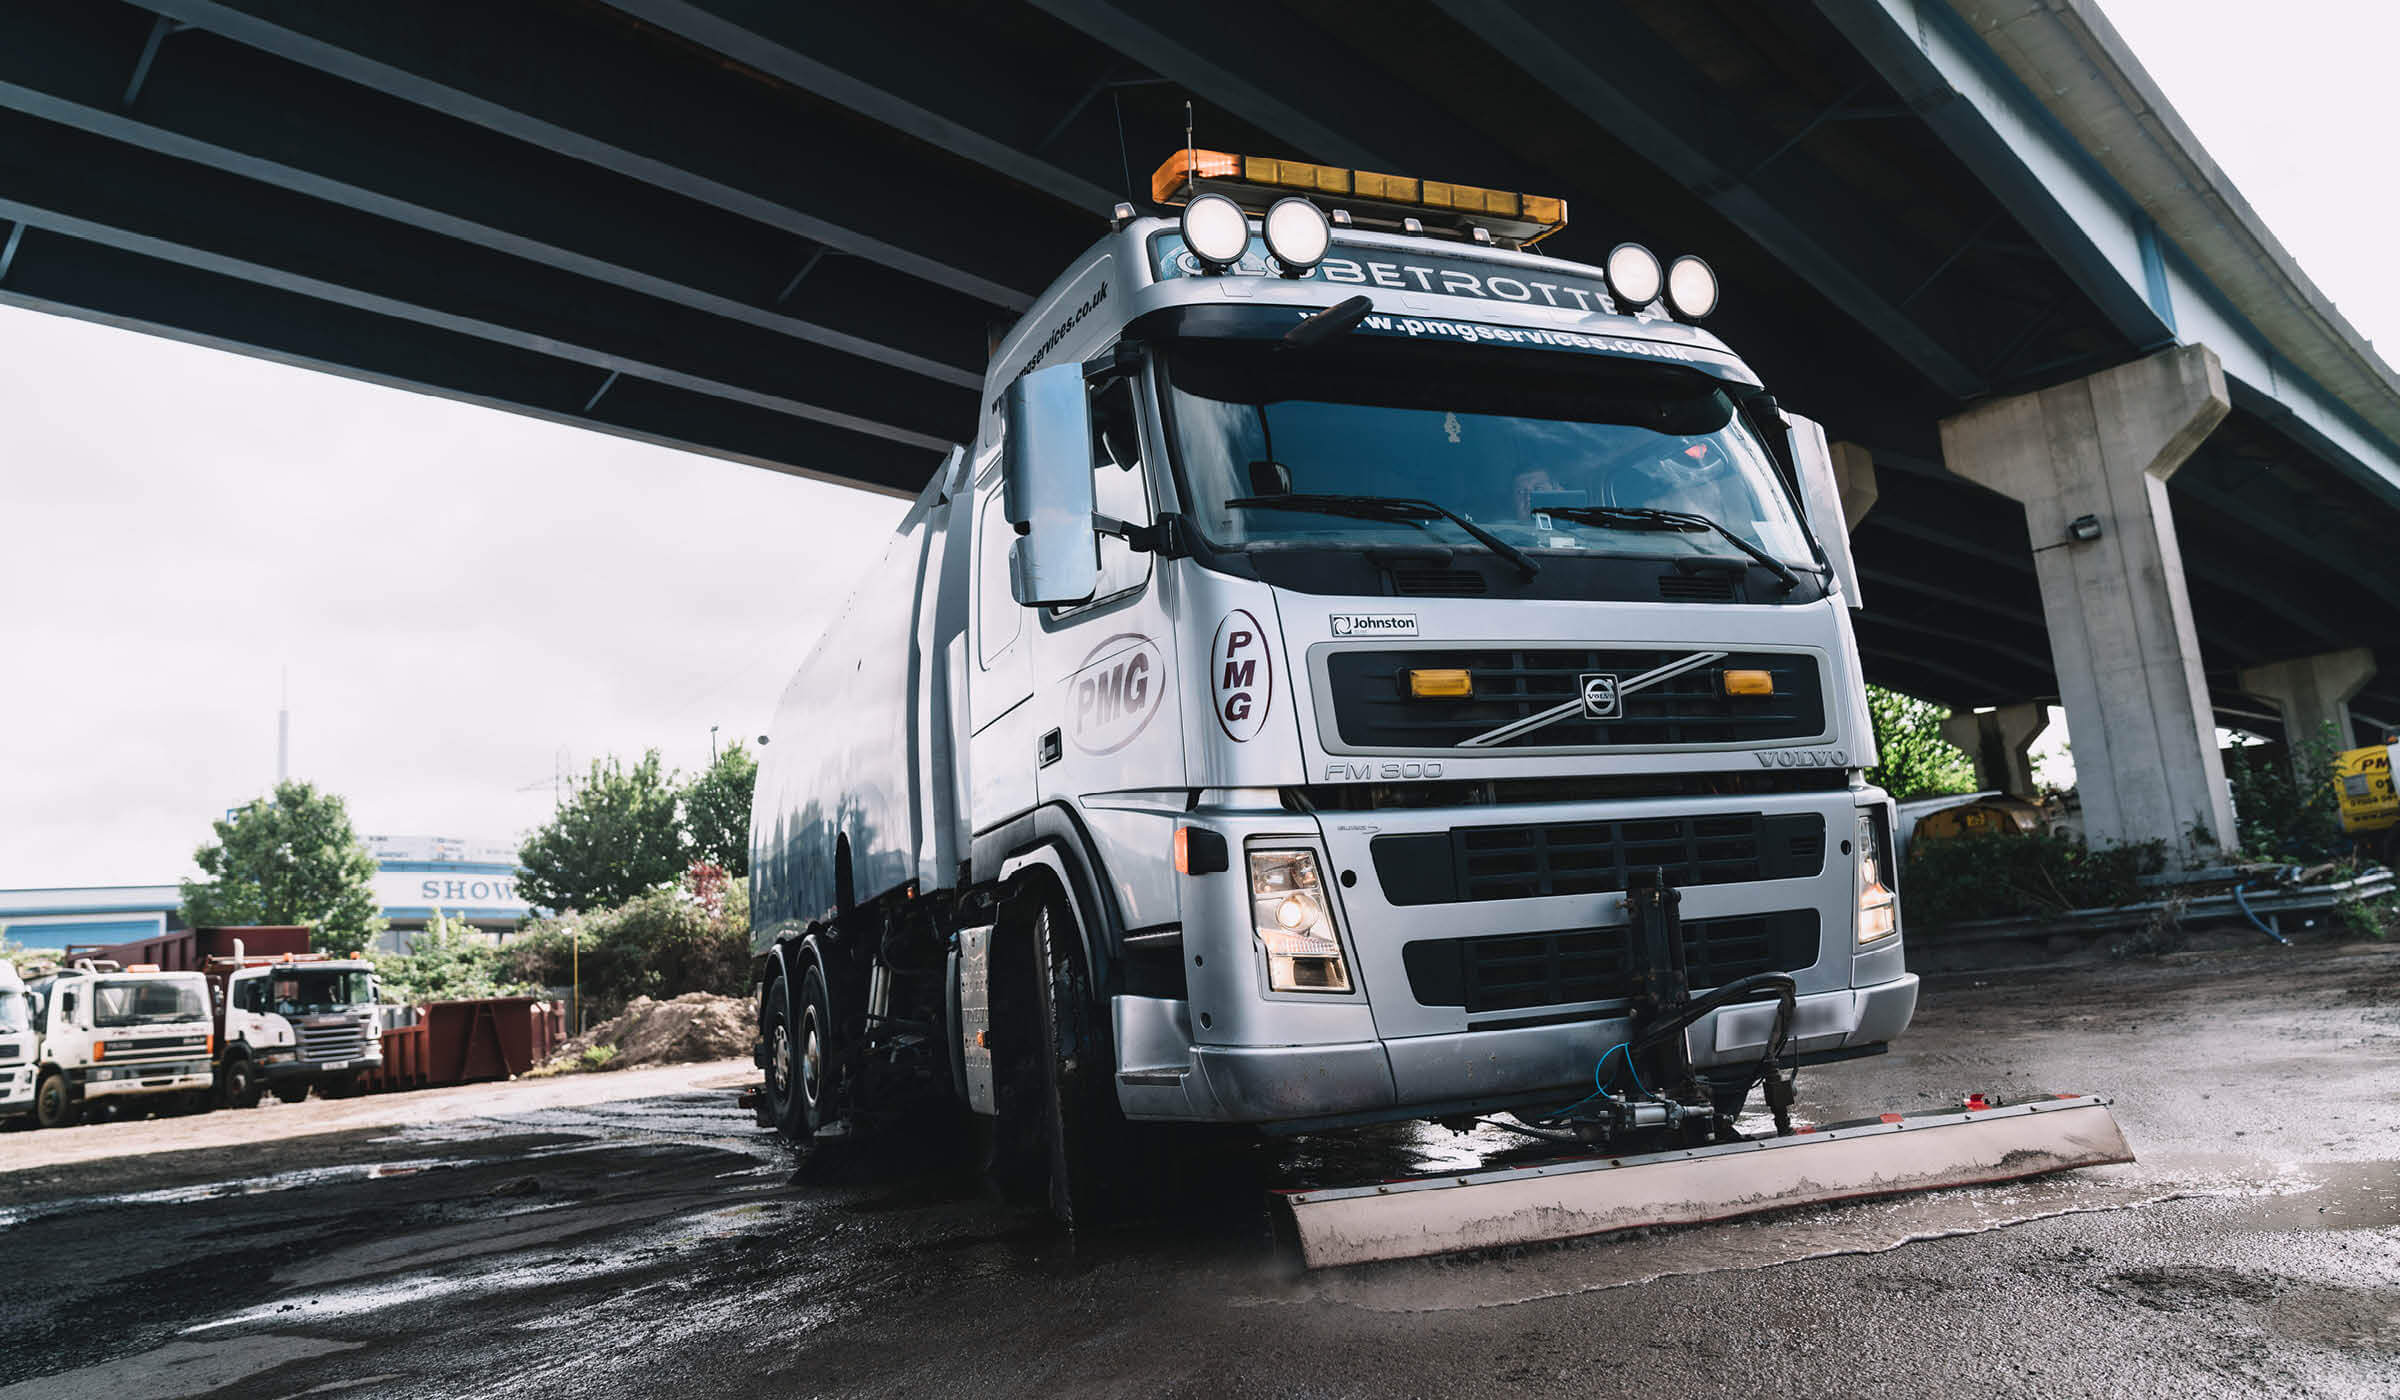 Photography case study for road sweepers and environmental service specialists PMG, based in Bristol